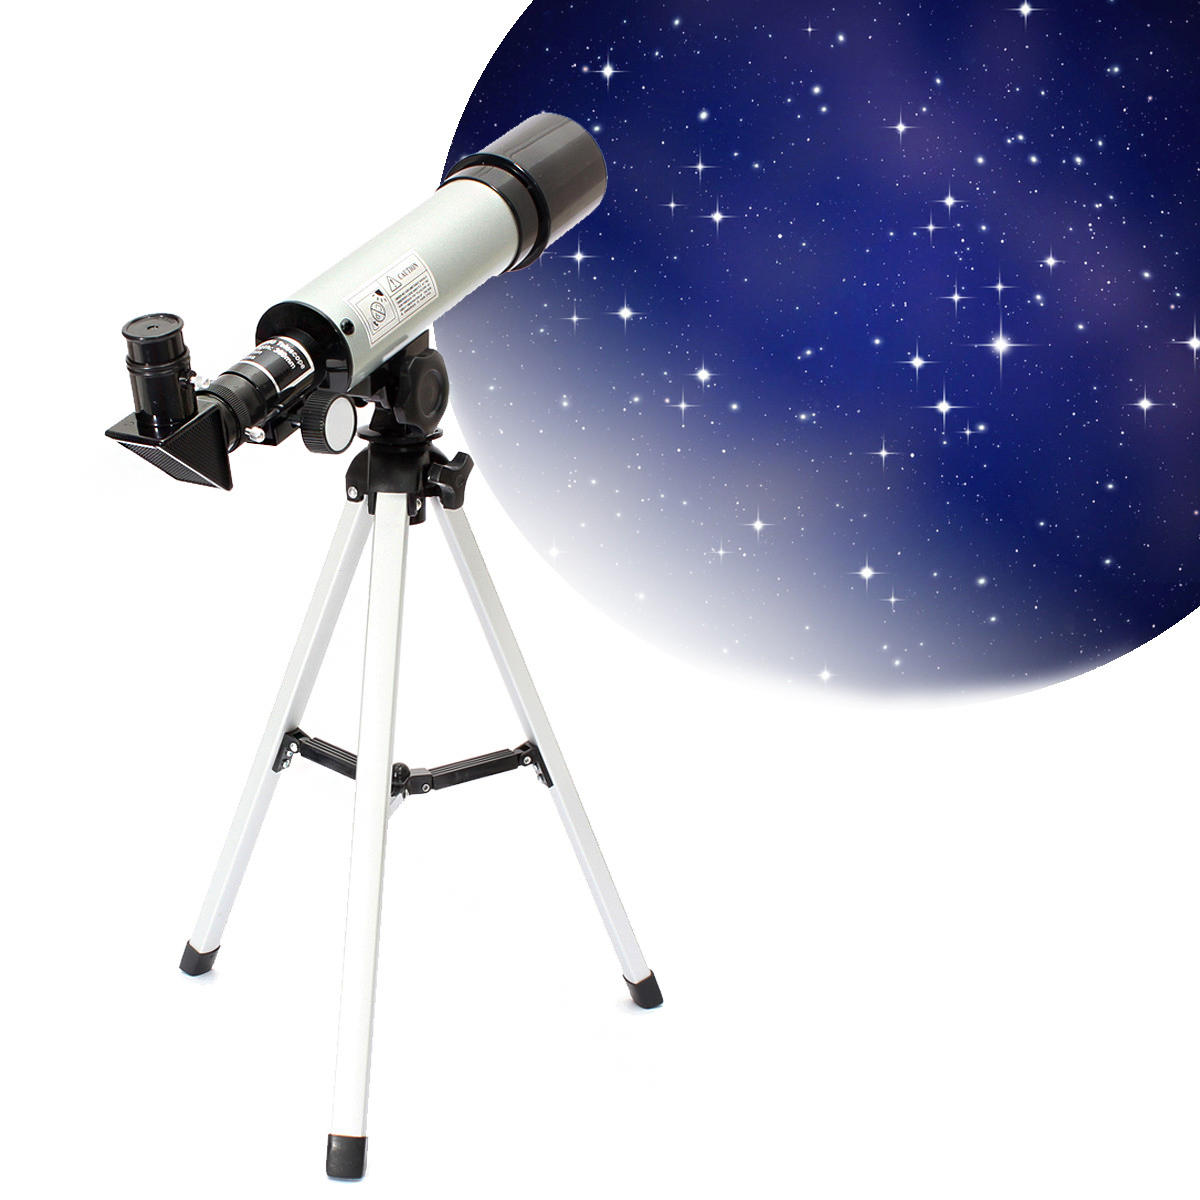 Moon Gaze F360x50 HD Refractive Astronomical Telescope High Magnification Zoom Monocular